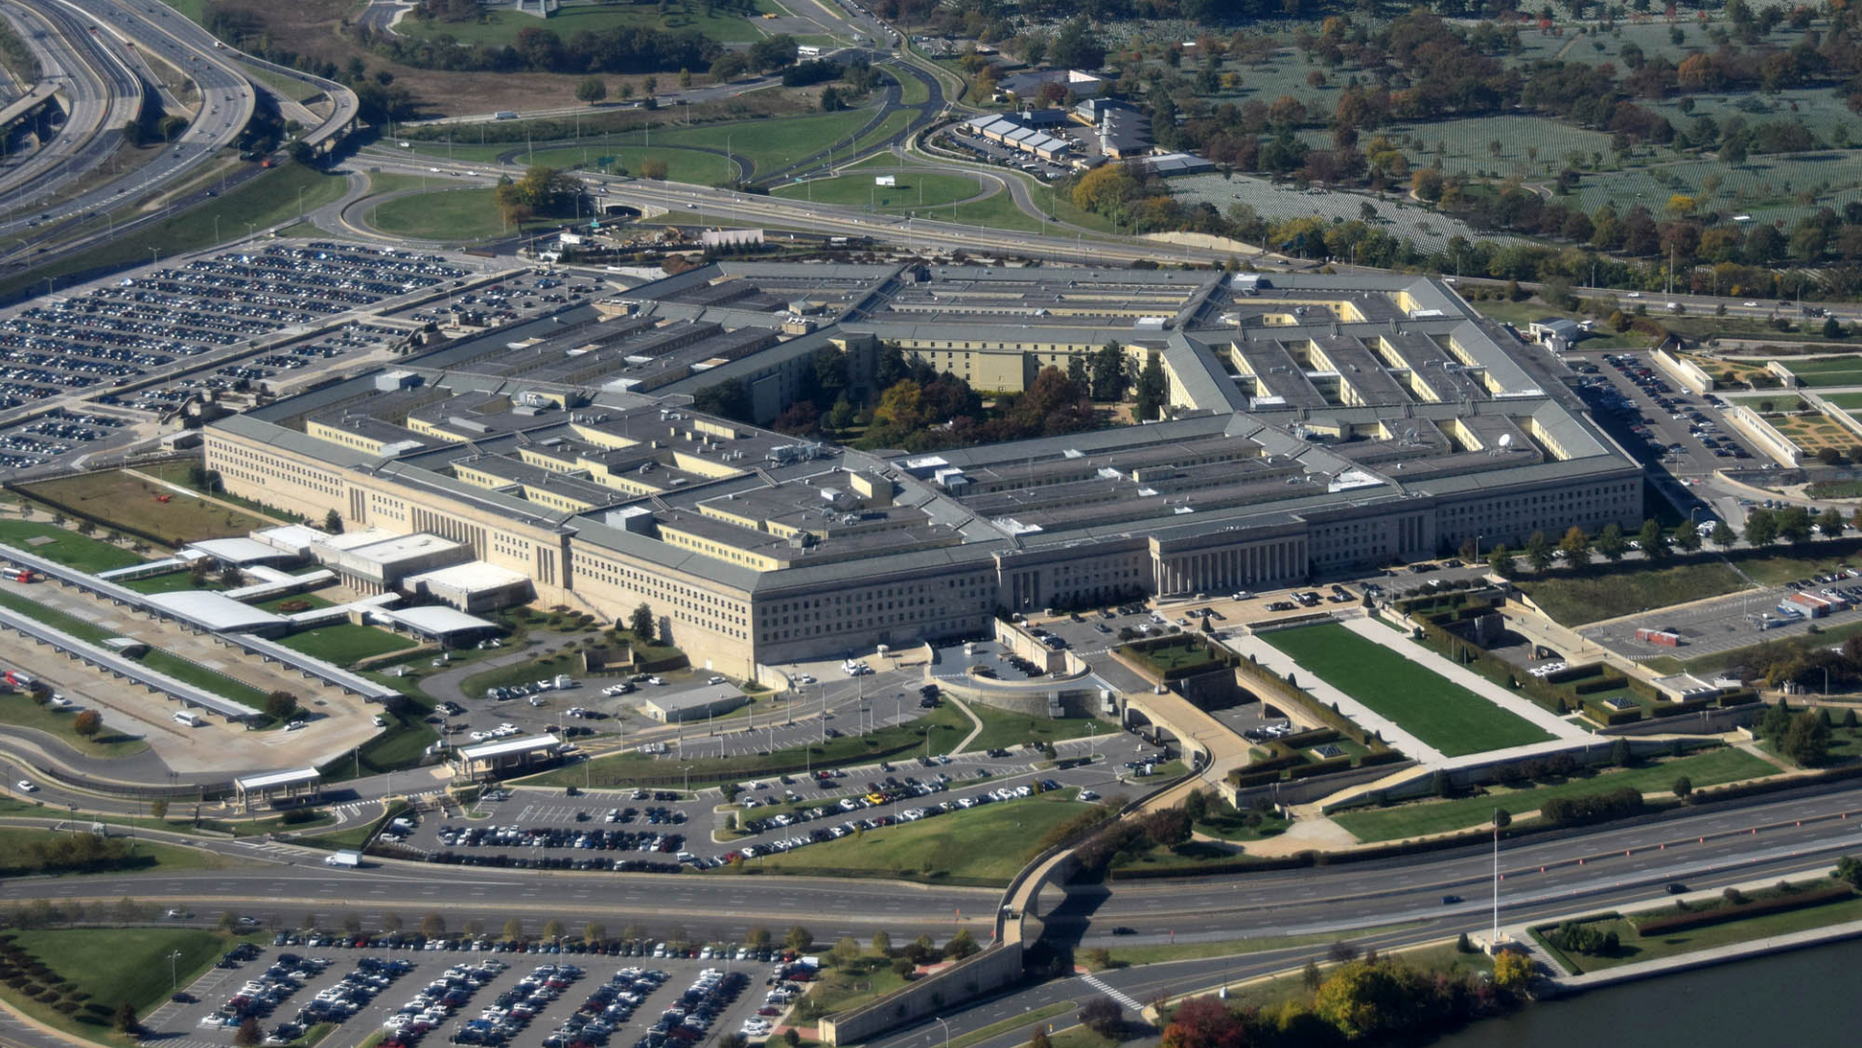 The Pentagon conducted a secret program from 2007 to 2012 to investigate UFO reports by military personnel.